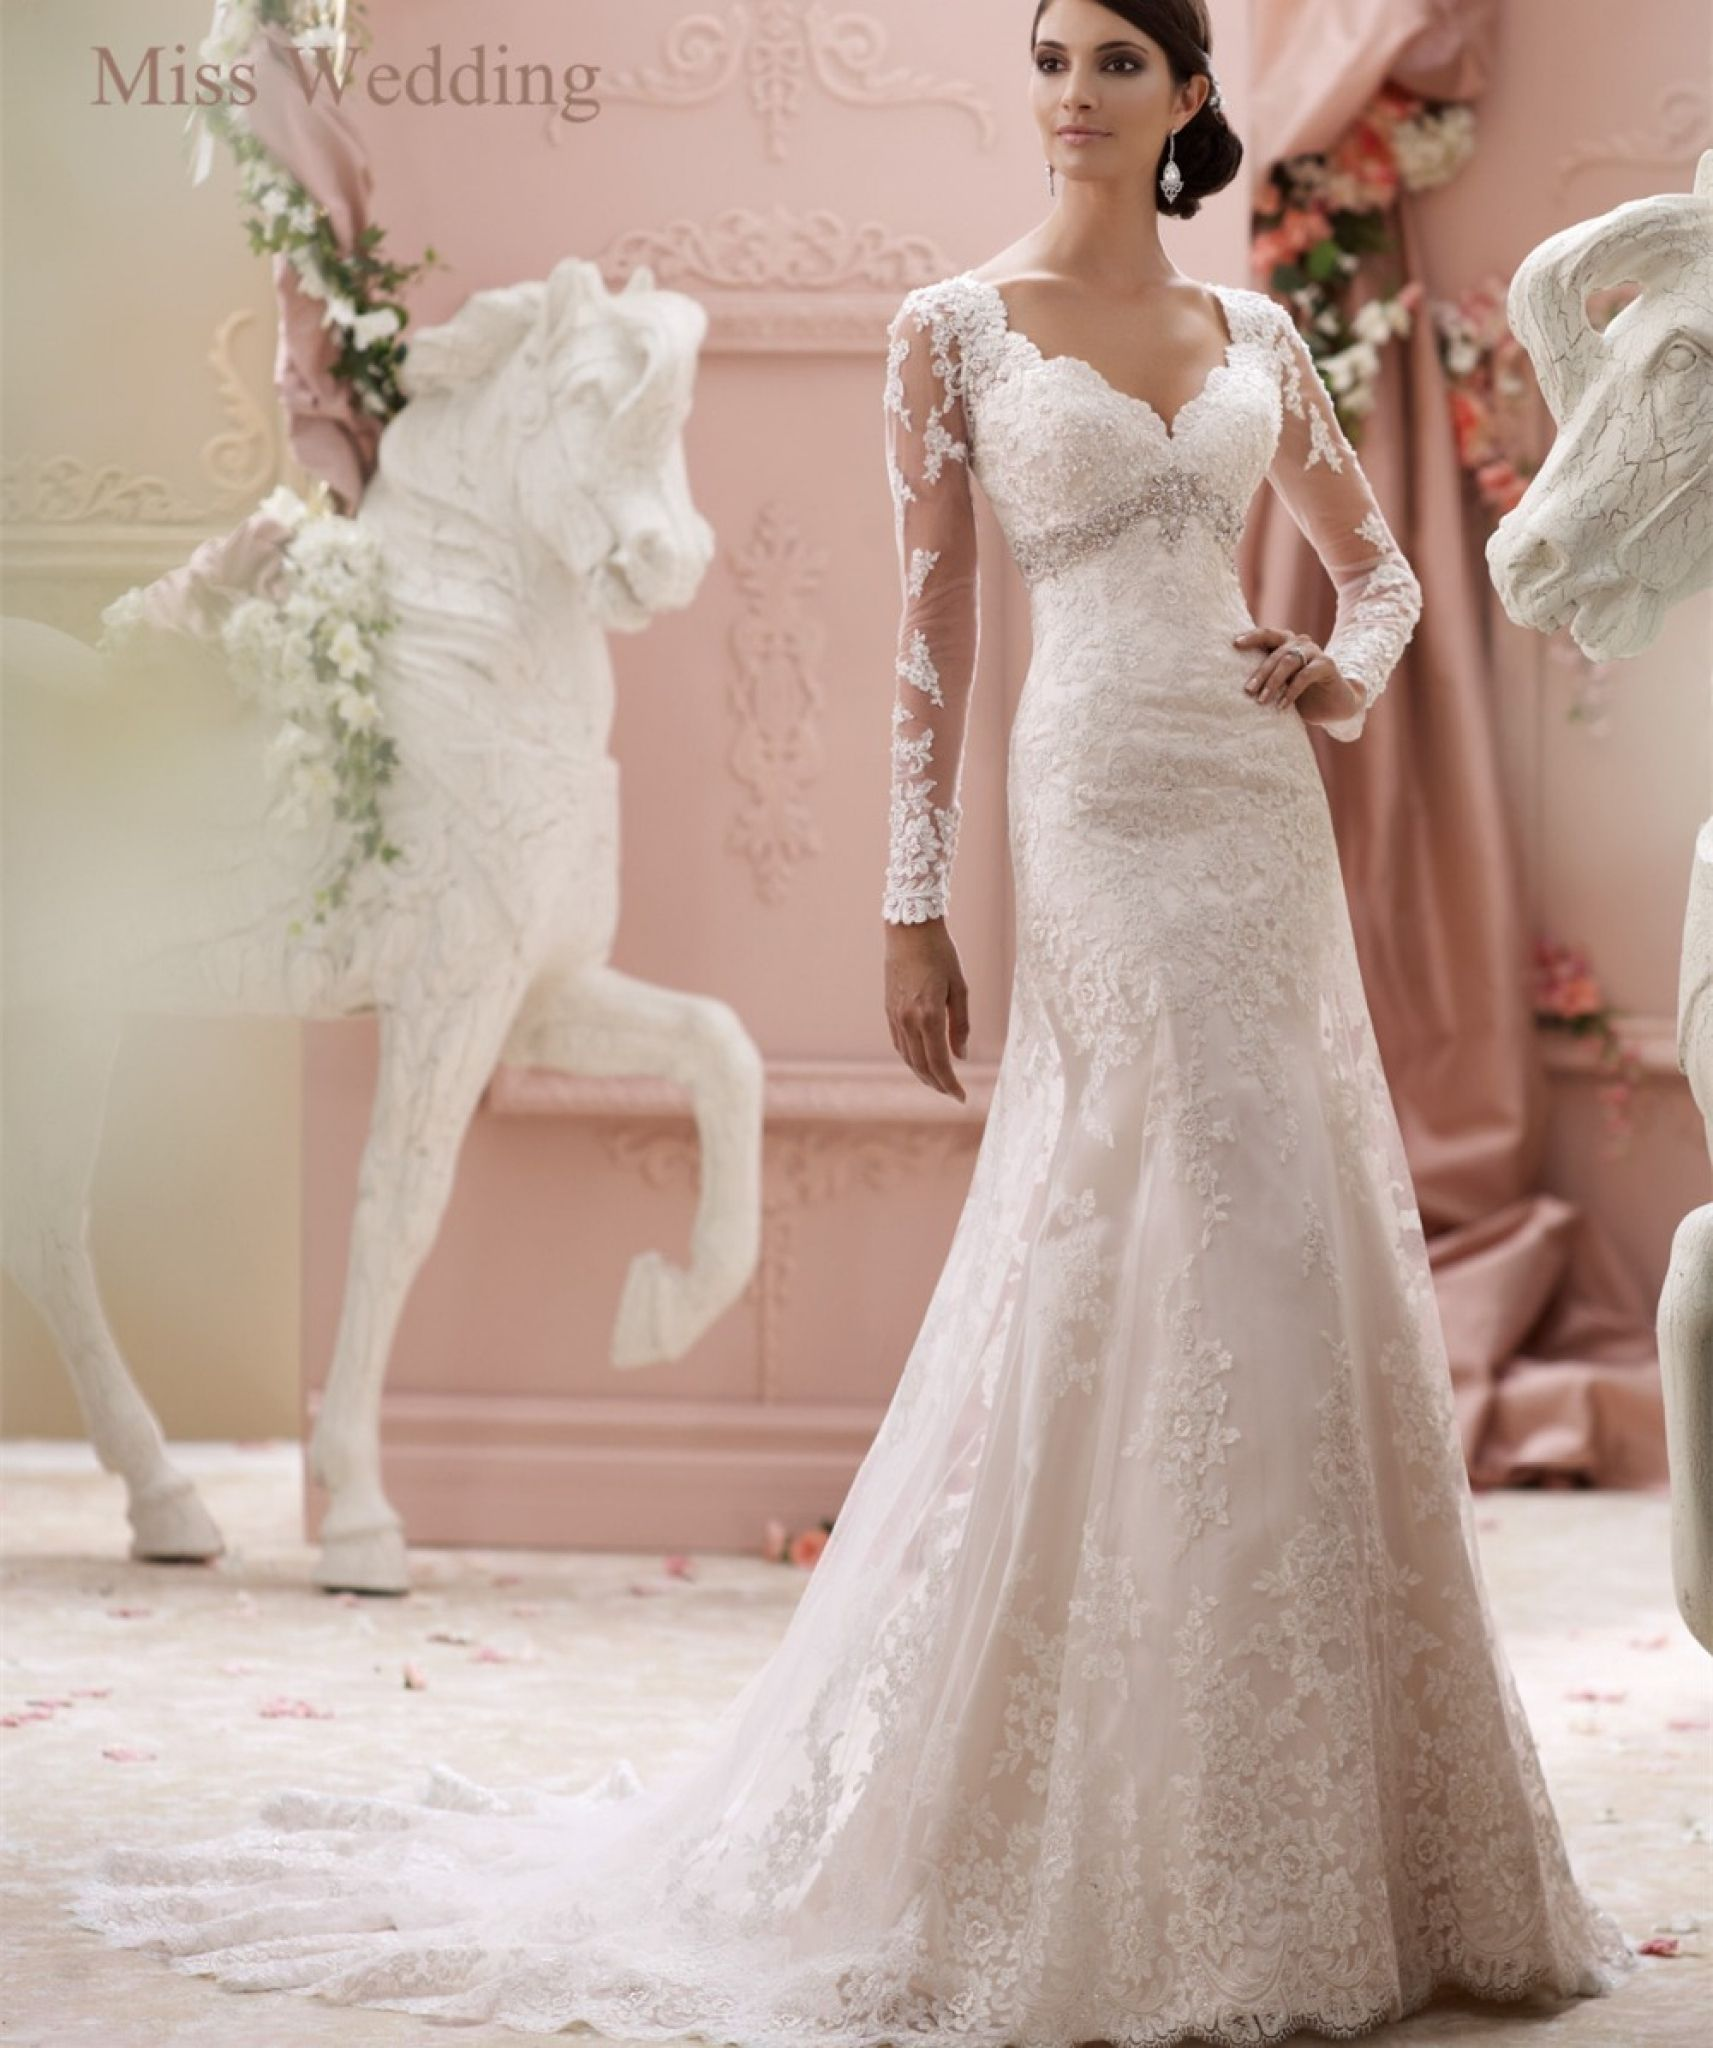 Vintage style wedding dresses lace cute dresses for a wedding